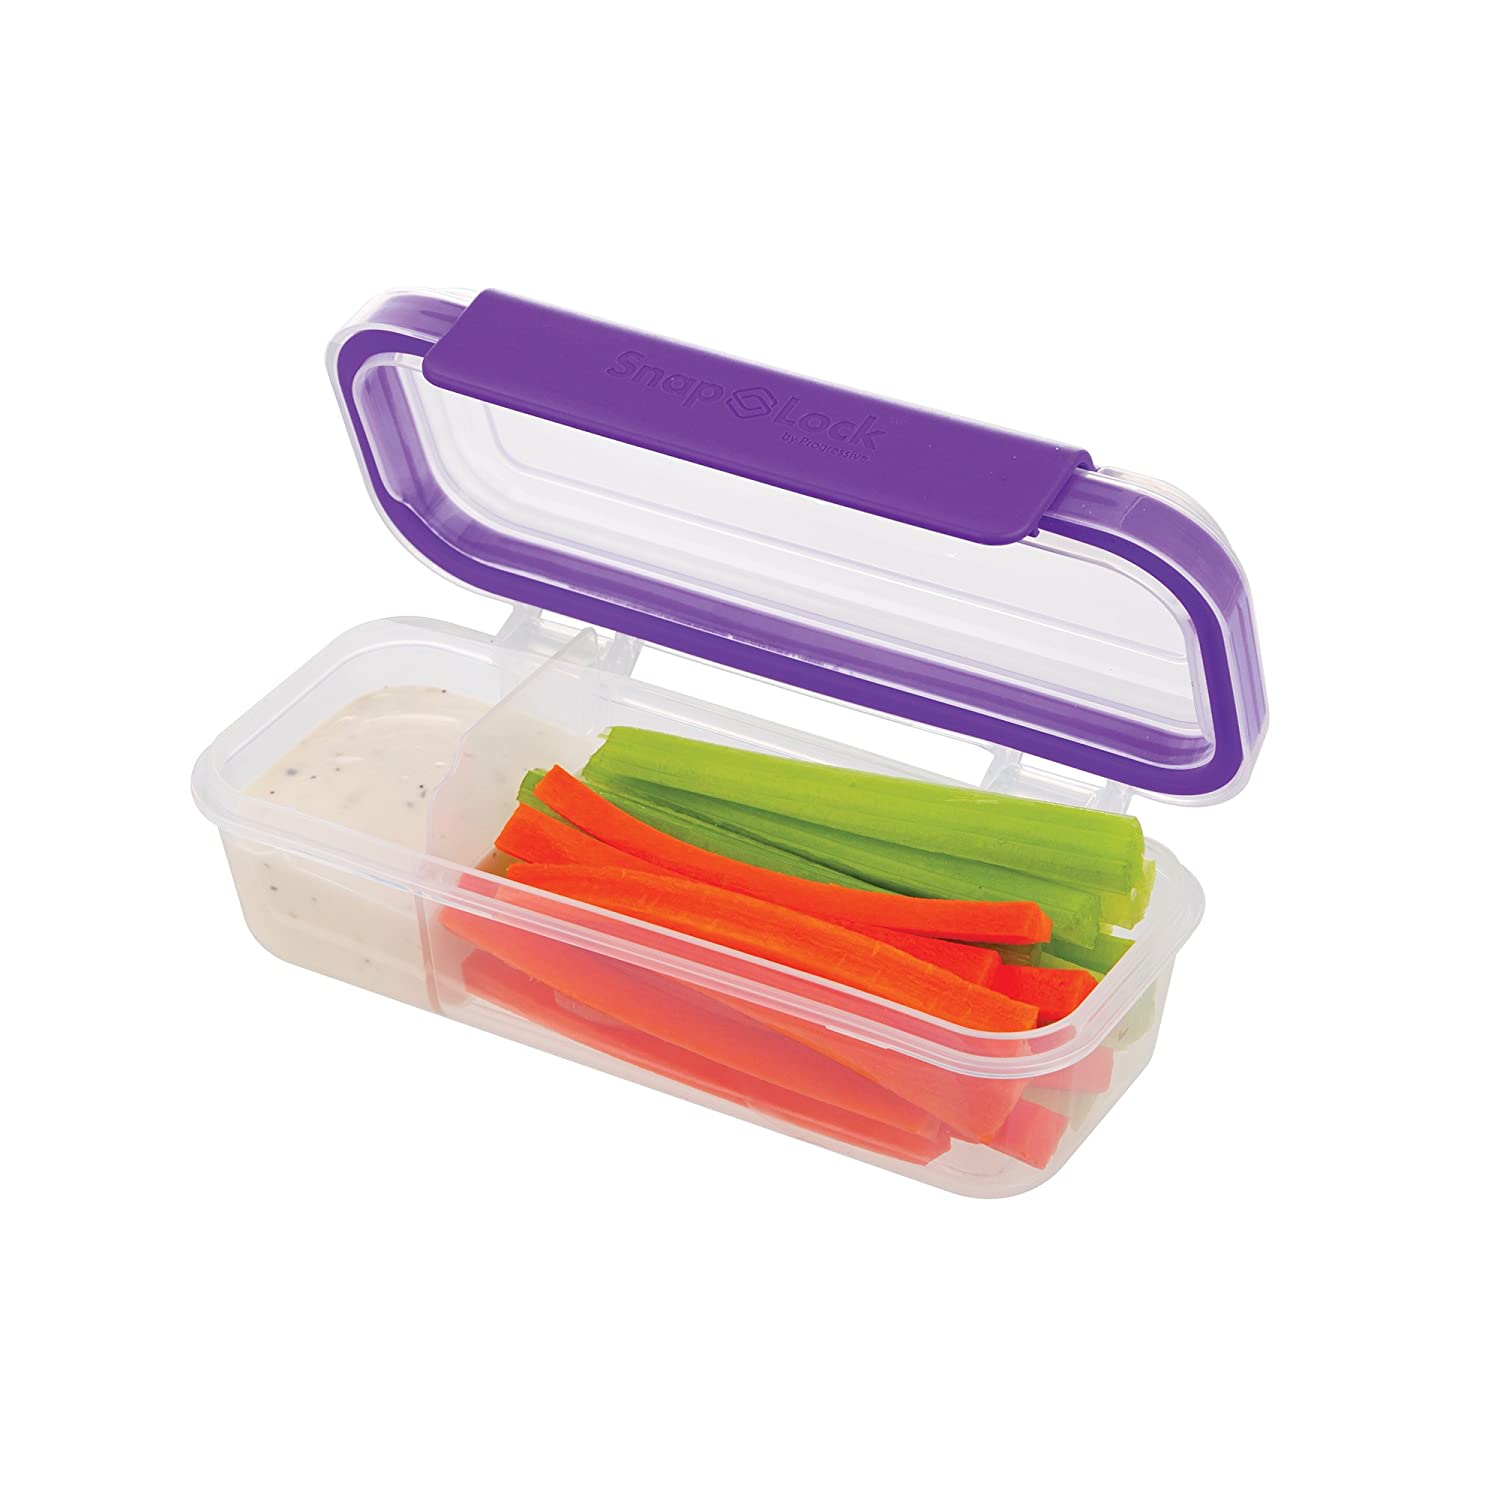 SNL-1020P  Easy-To-Open Stackable SnapLock by Progressive Snack Box Container Snap-Off Lid Purple BPA FREE Leak-Proof Silicone Seal